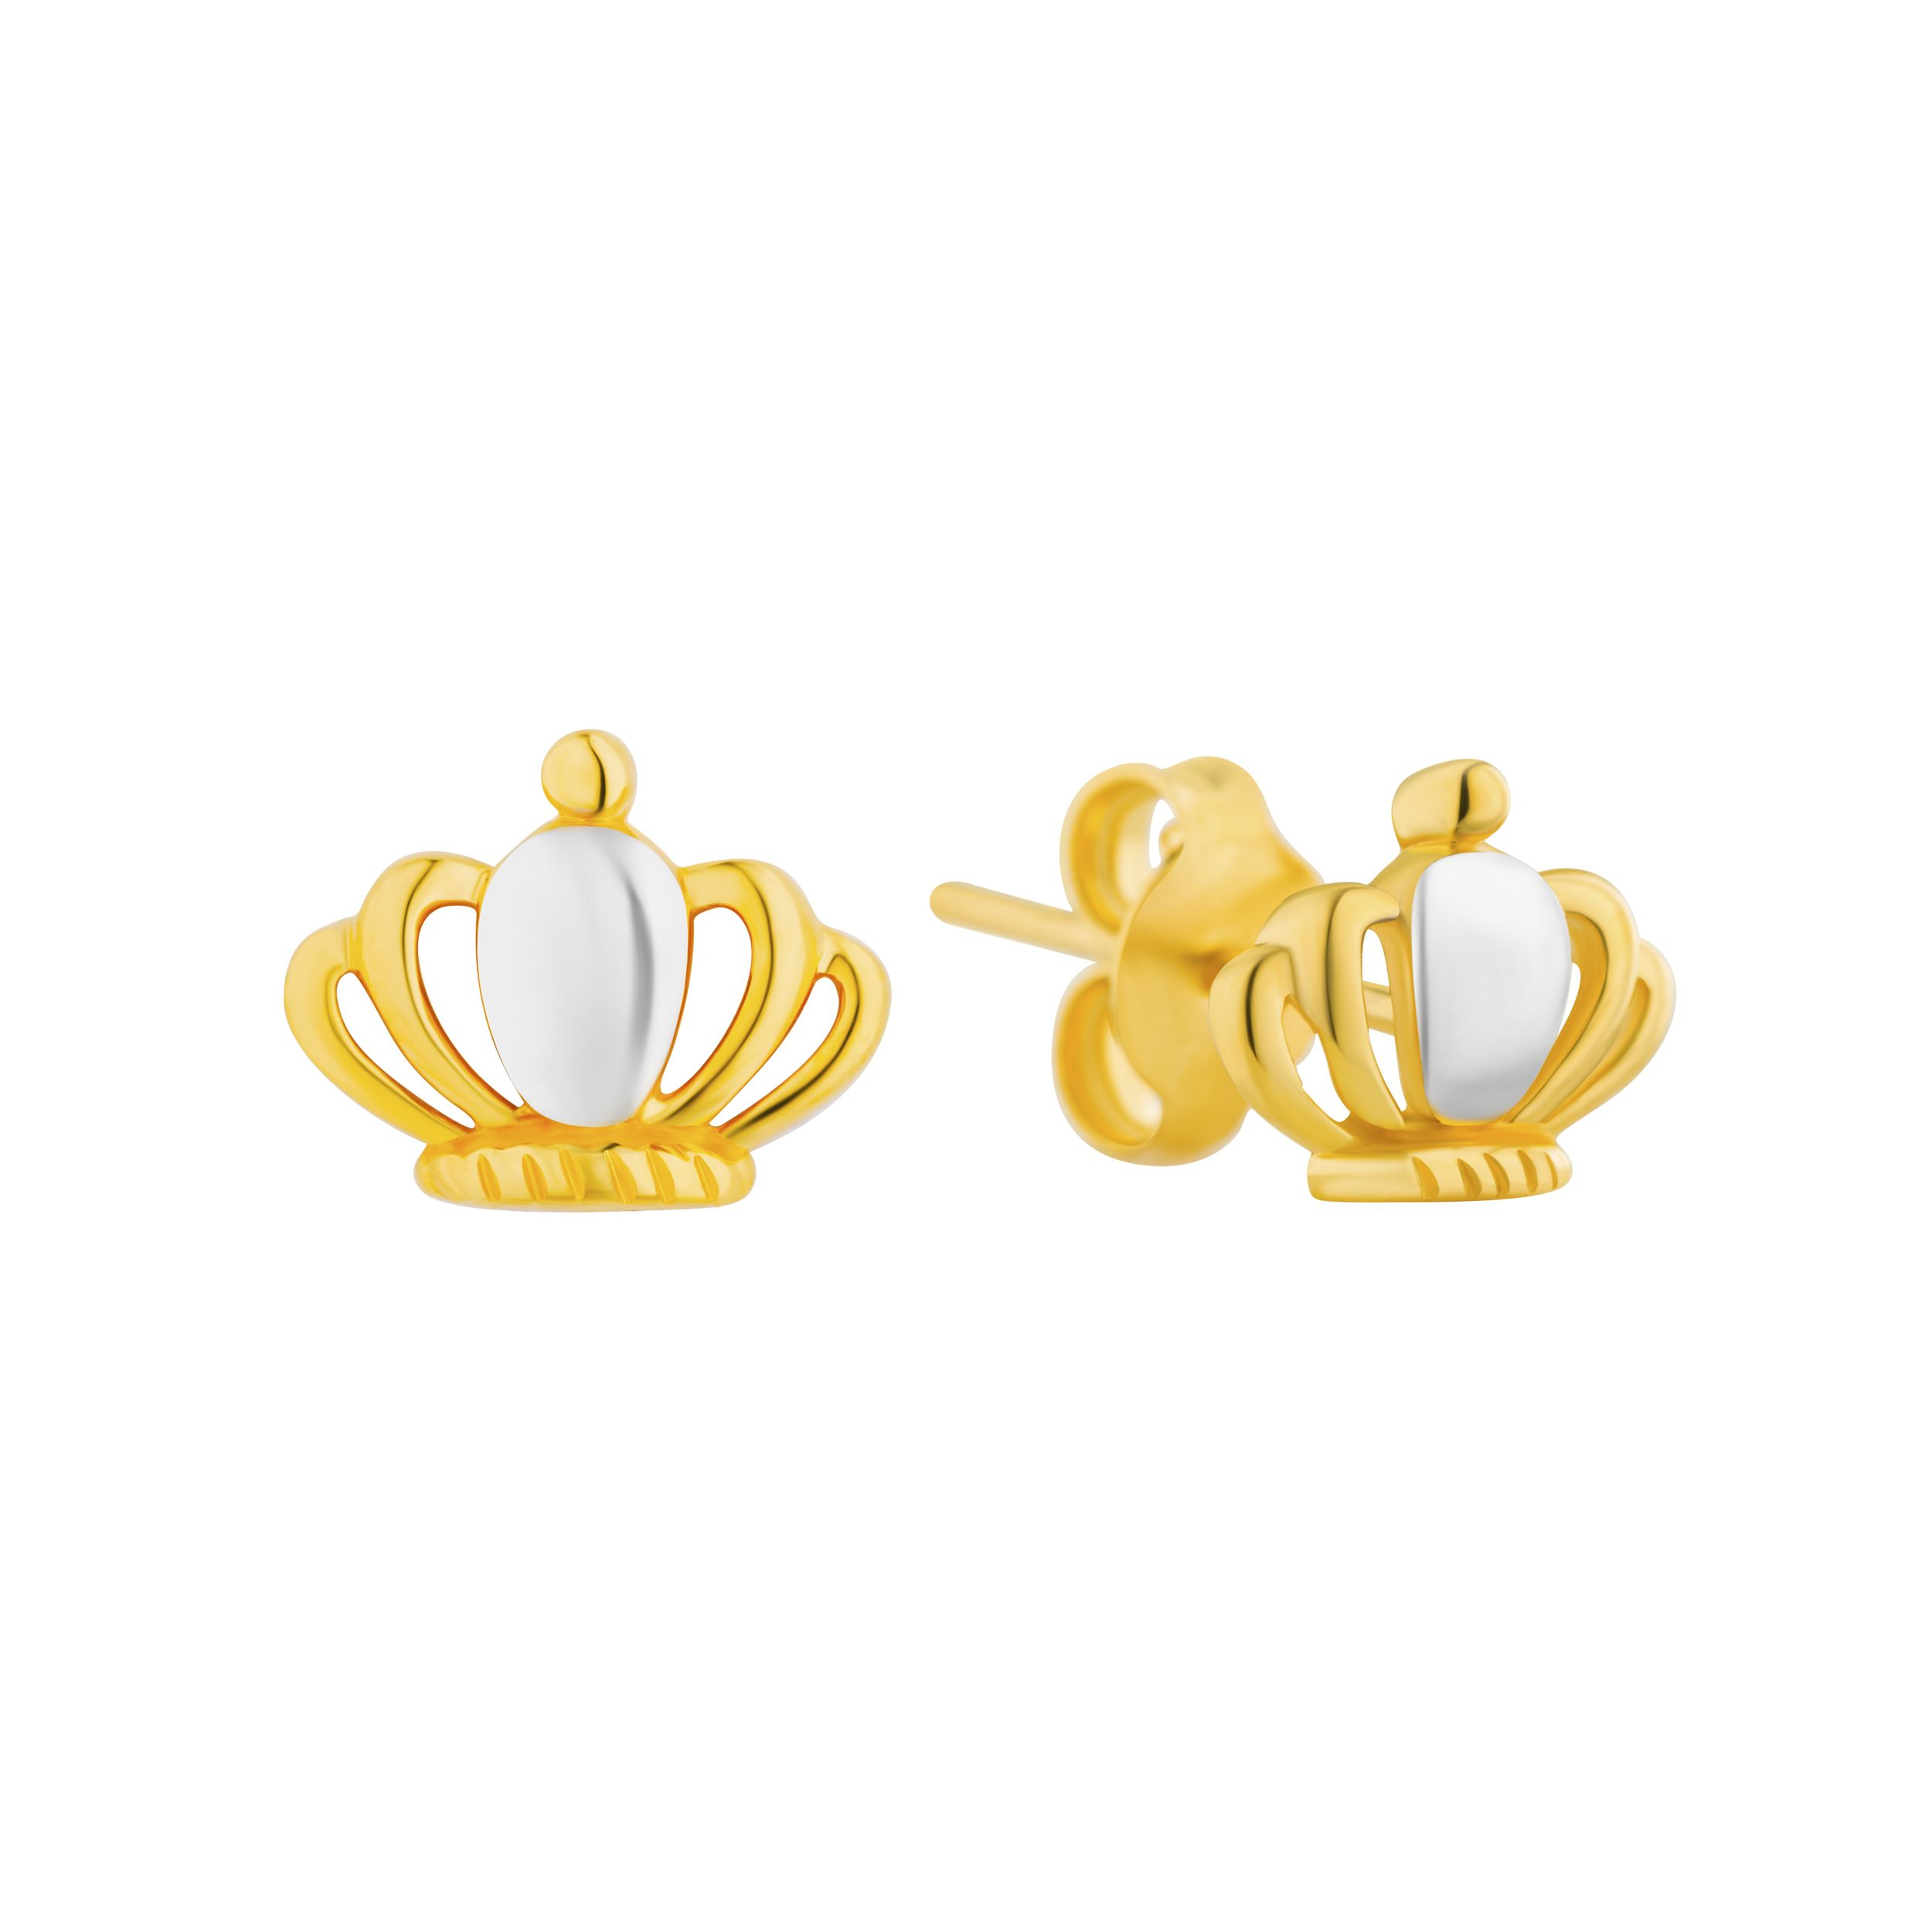 spheres shop golden products earrings jewellery orb stud mango small tree